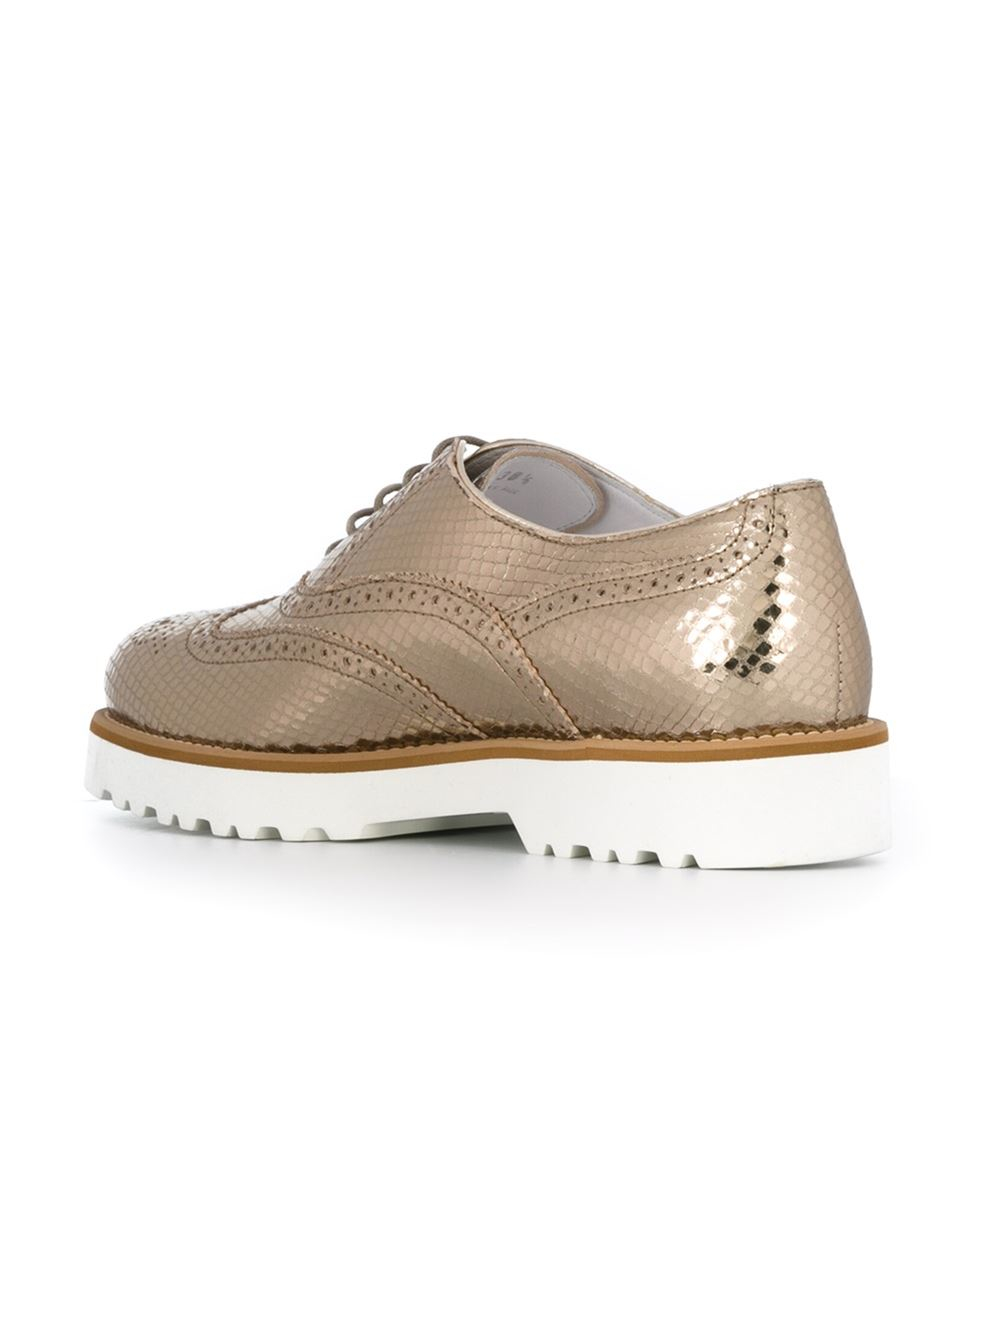 Find metallic leather brogues at ShopStyle. Shop the latest collection of metallic leather brogues from the most popular stores - all in one place.